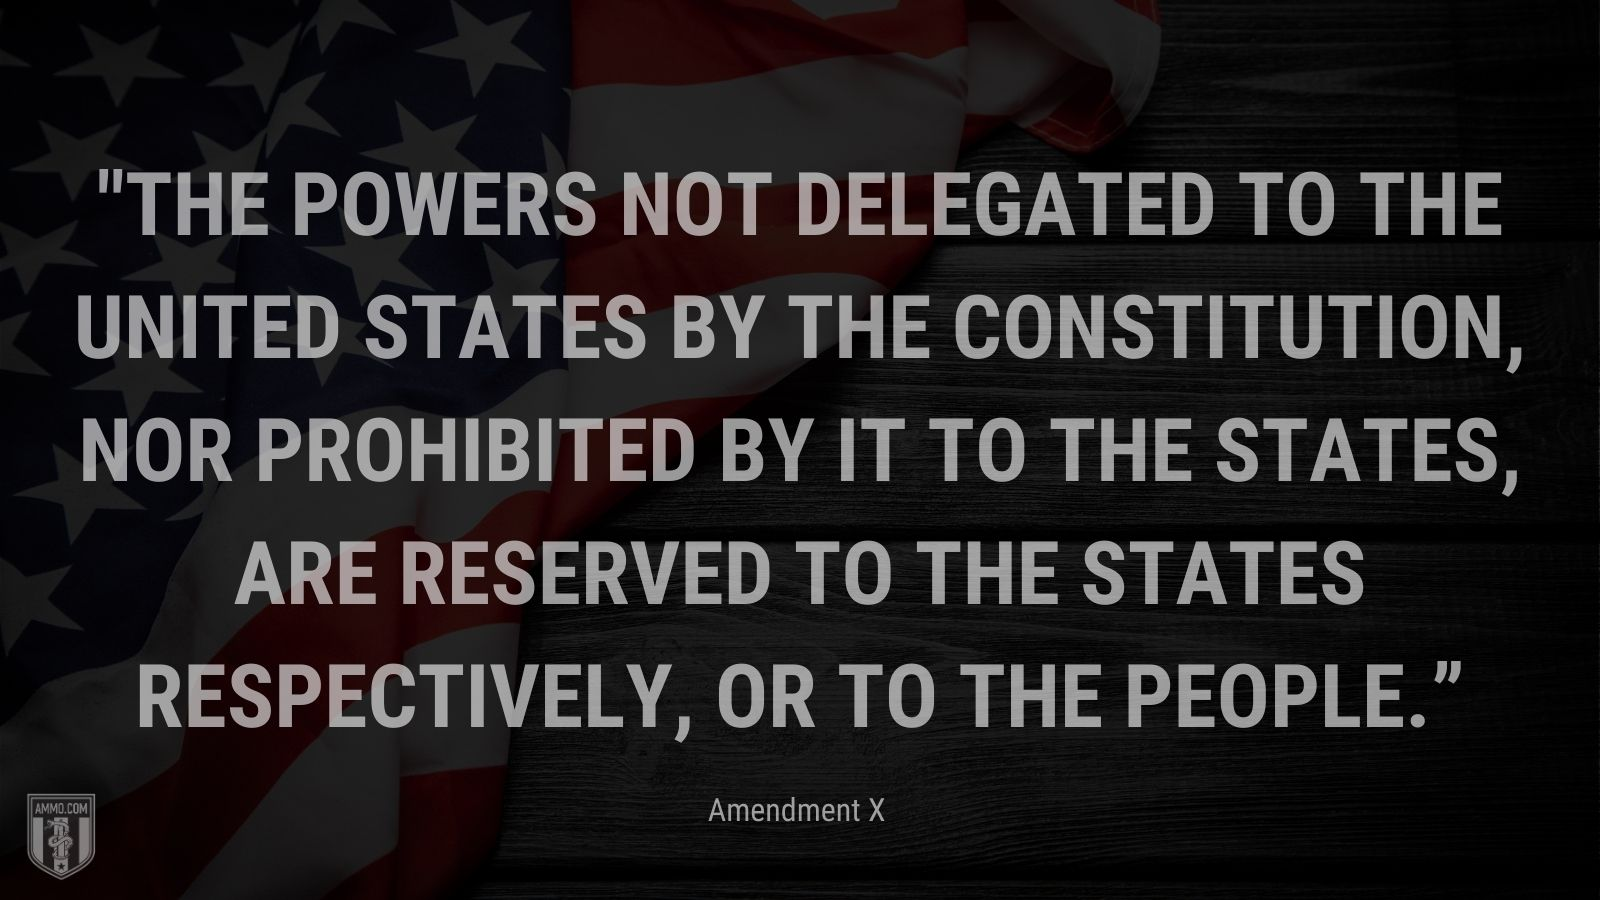 """""""The powers not delegated to the United States by the Constitution, nor prohibited by it to the States, are reserved to the States respectively, or to the people."""" - Amendment X"""